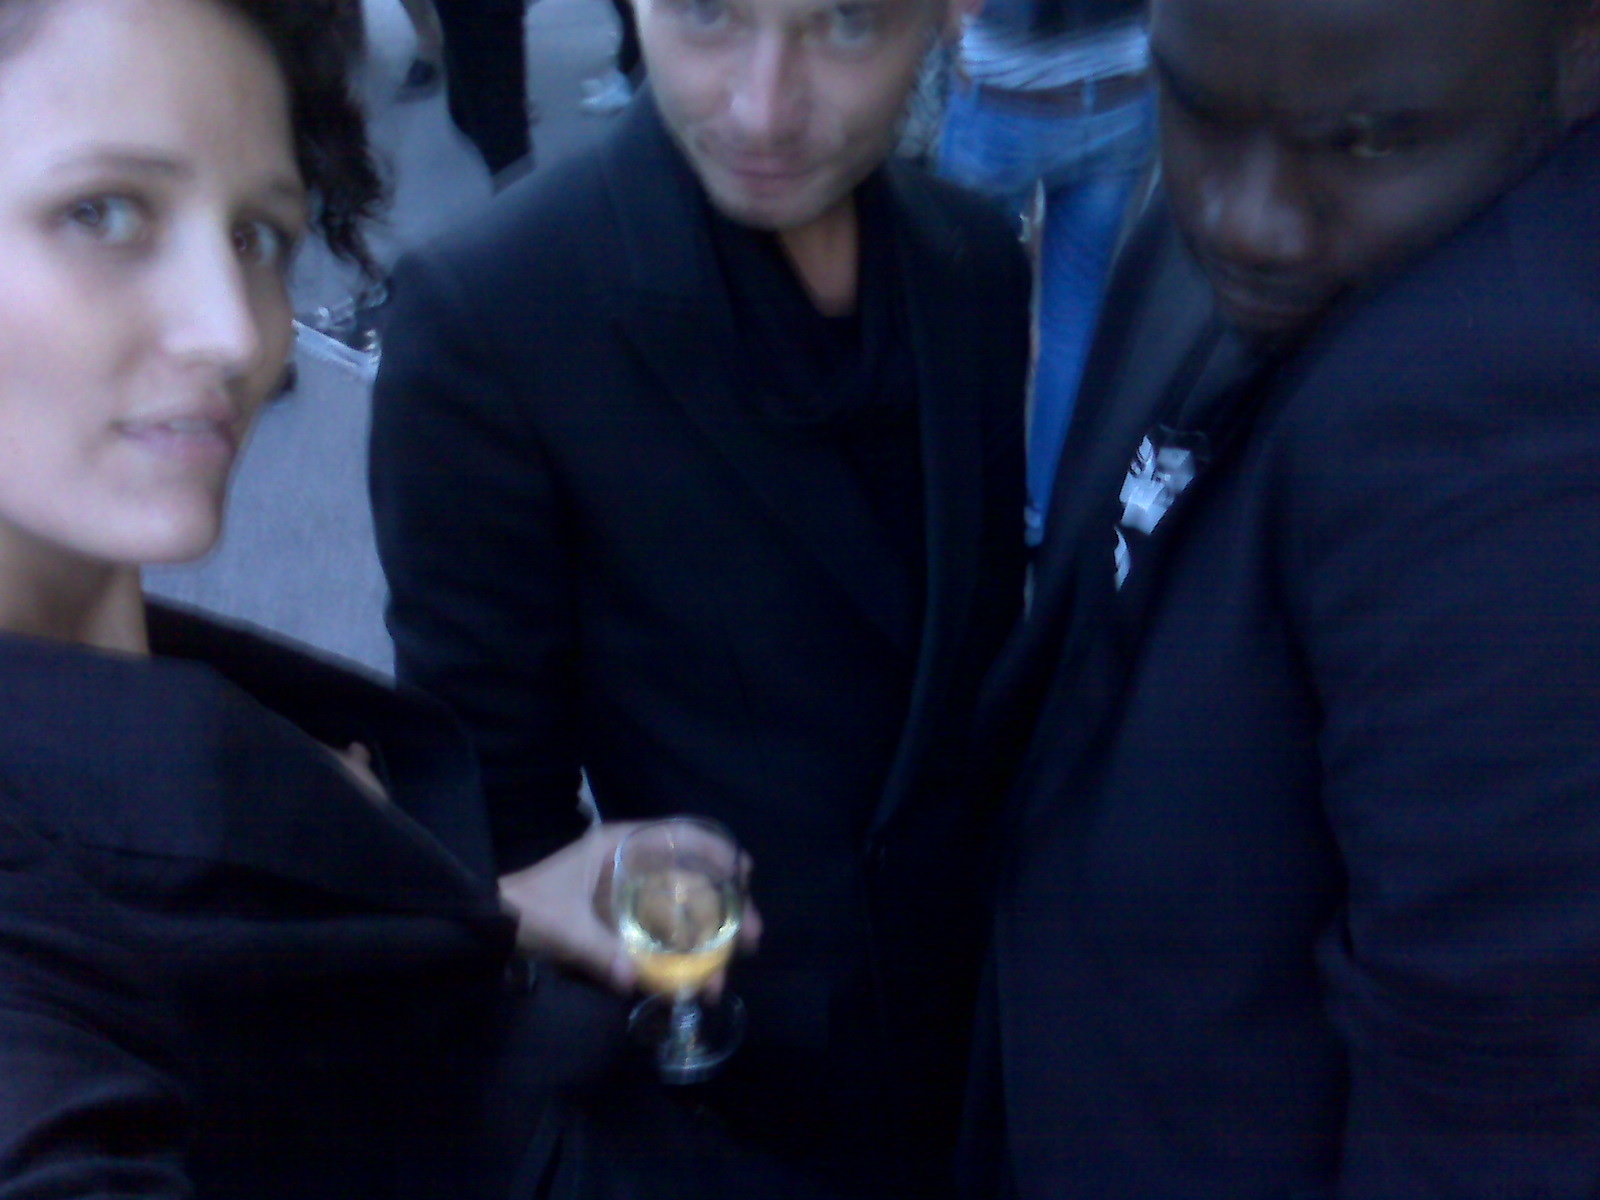 tim clifton-green, formerly of love magazine, with gabriel and I at the after-reception - black blazer committee will call to order